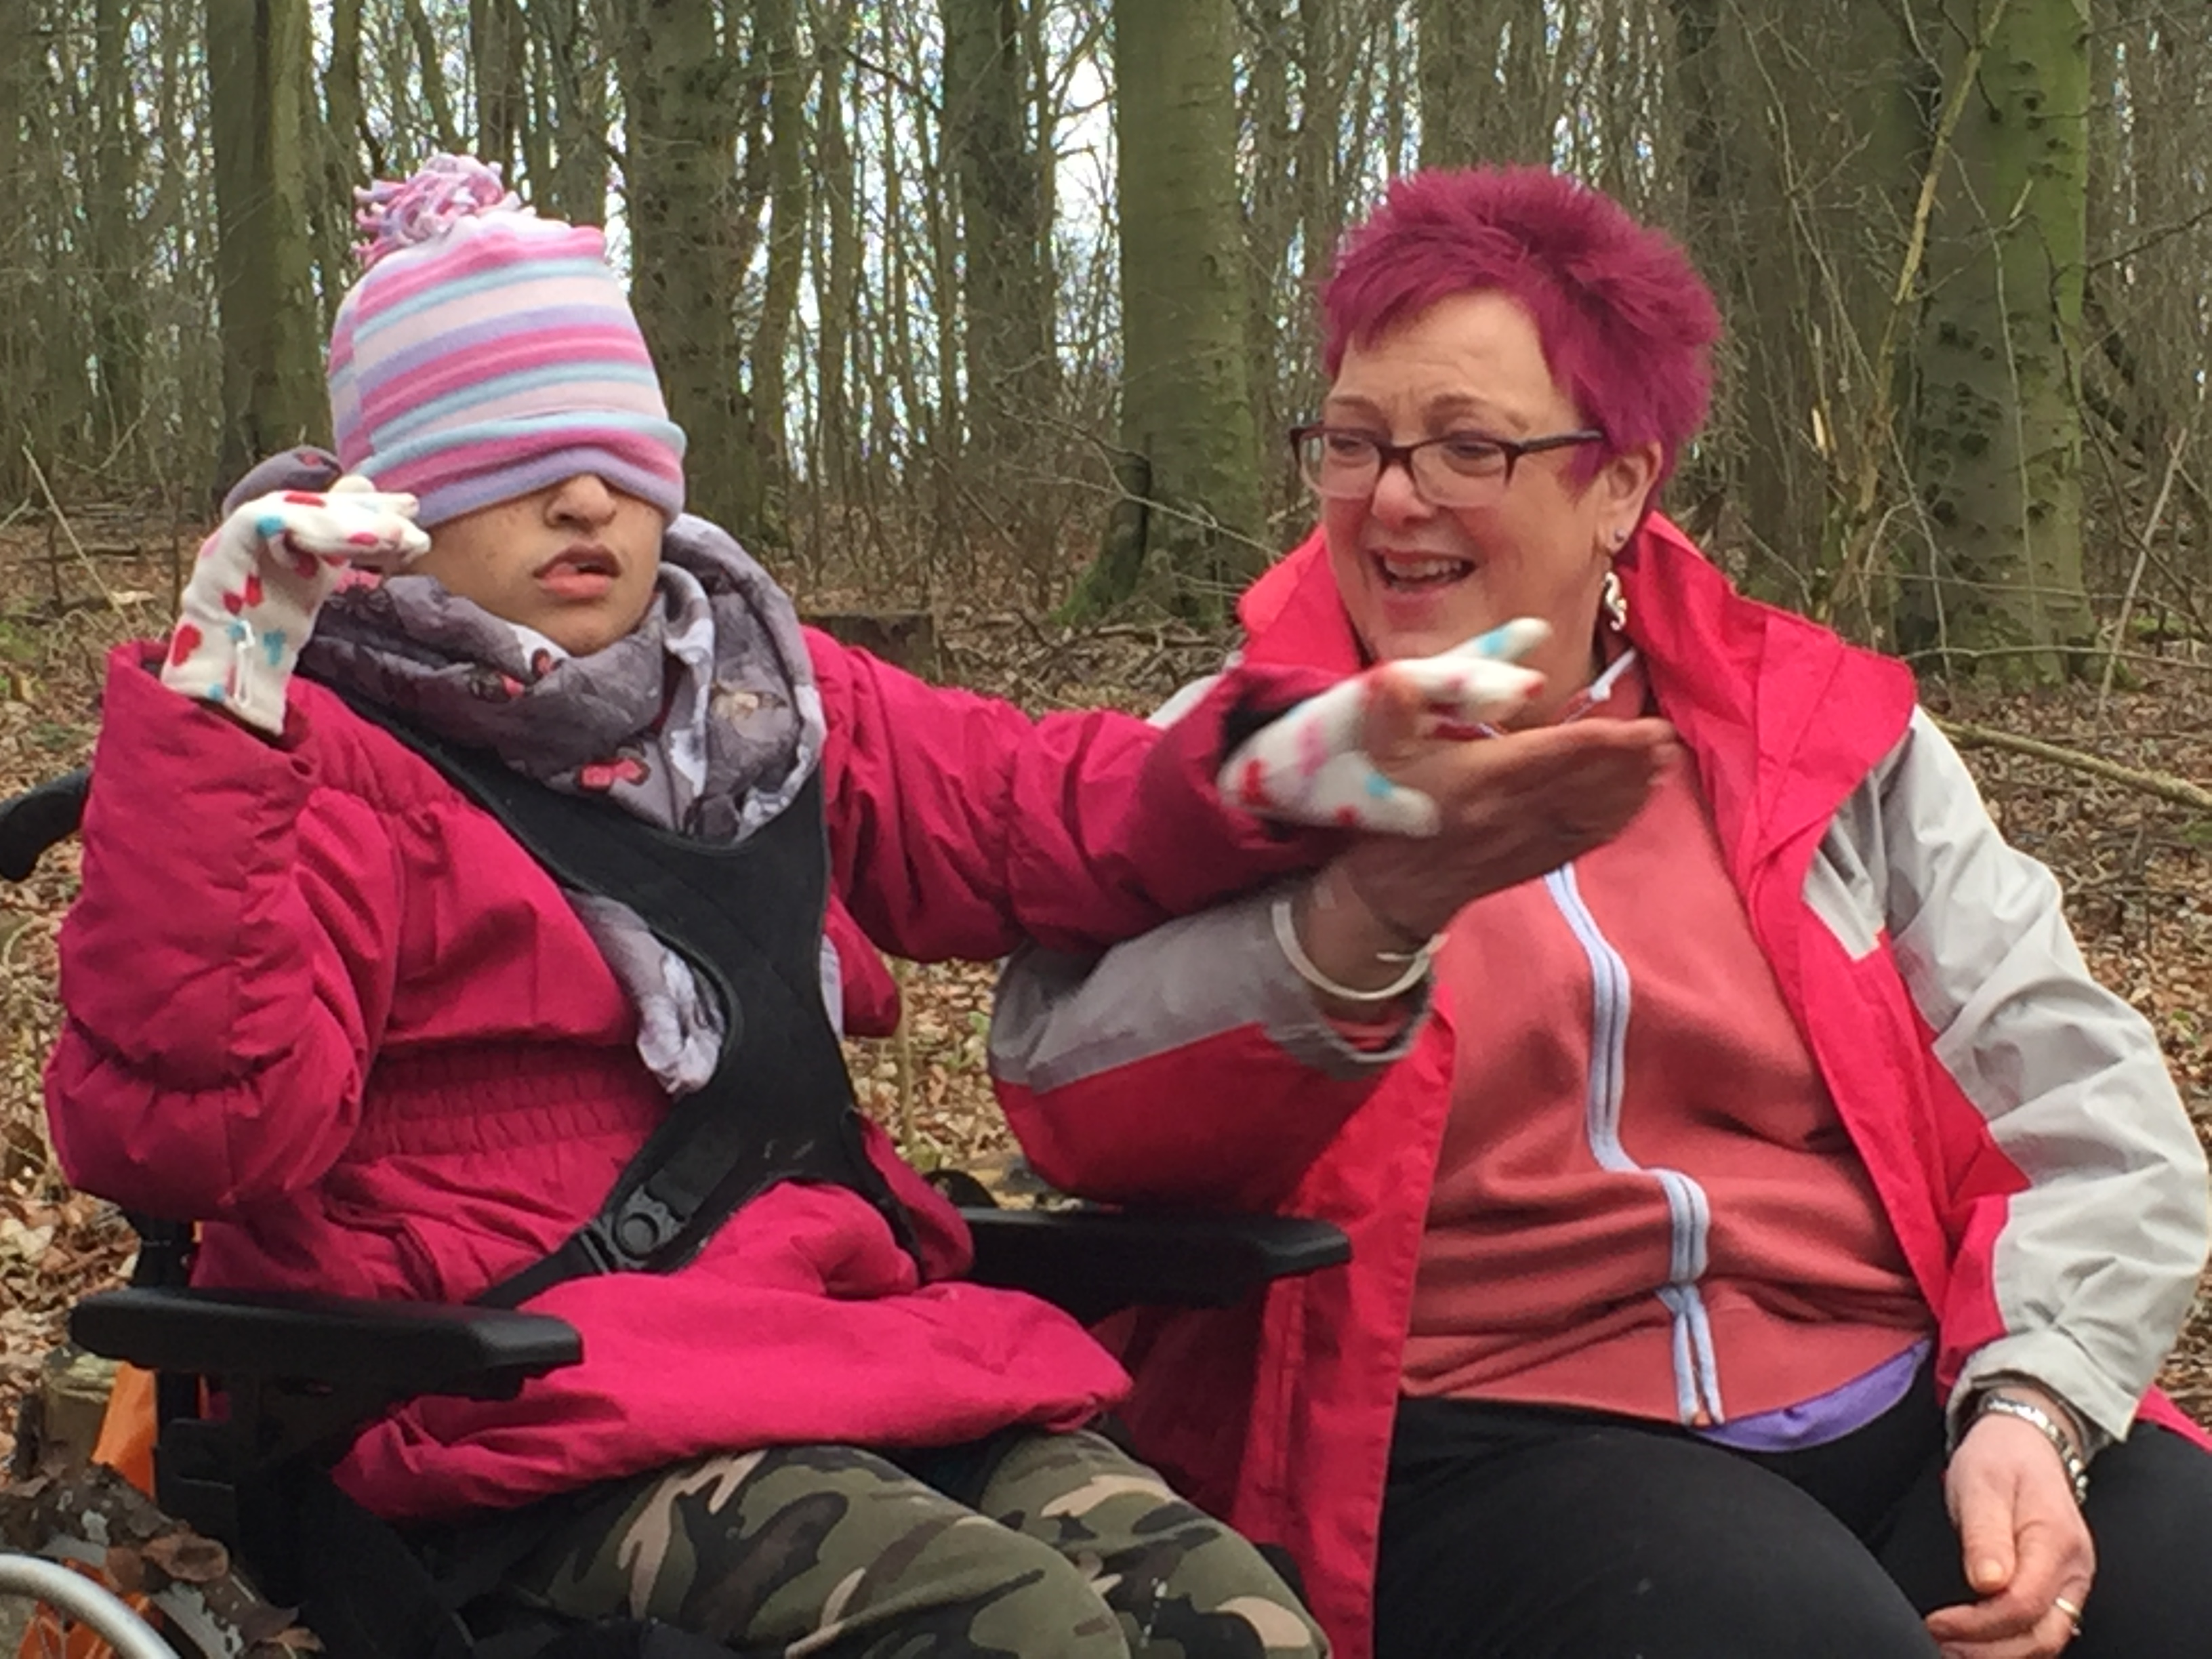 Short Breaks Service for disabled children launches in Birmingham